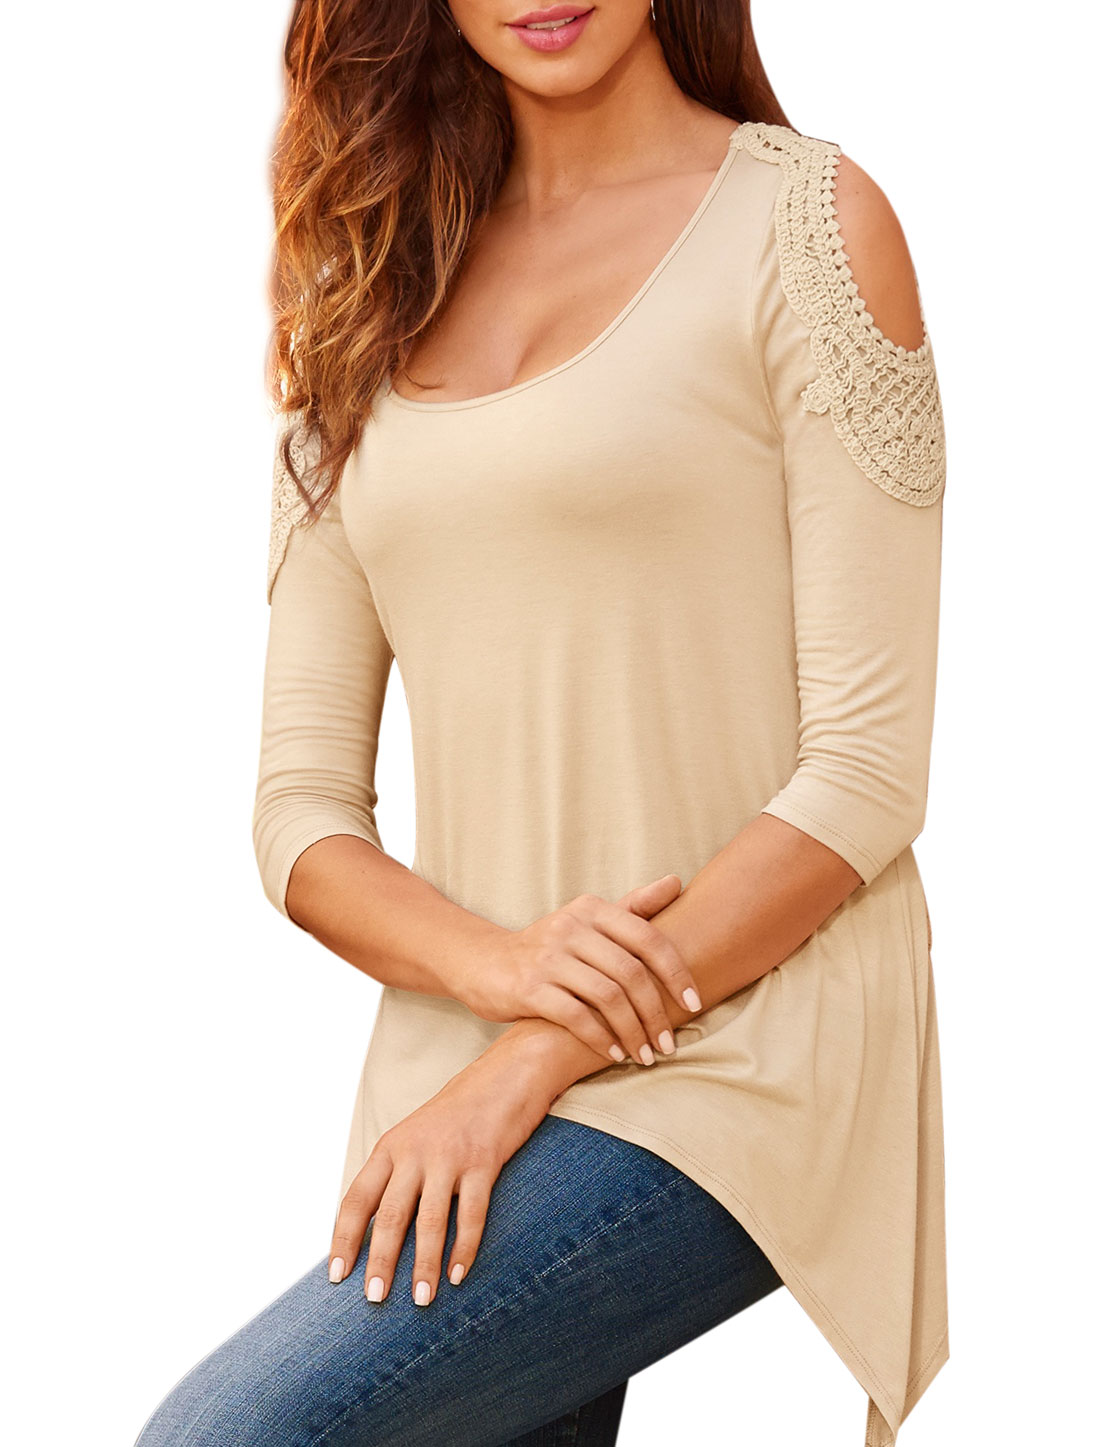 Women Scoop Neck 3/4 Sleeves Cut Out Shoulder Tunic Top Beige M